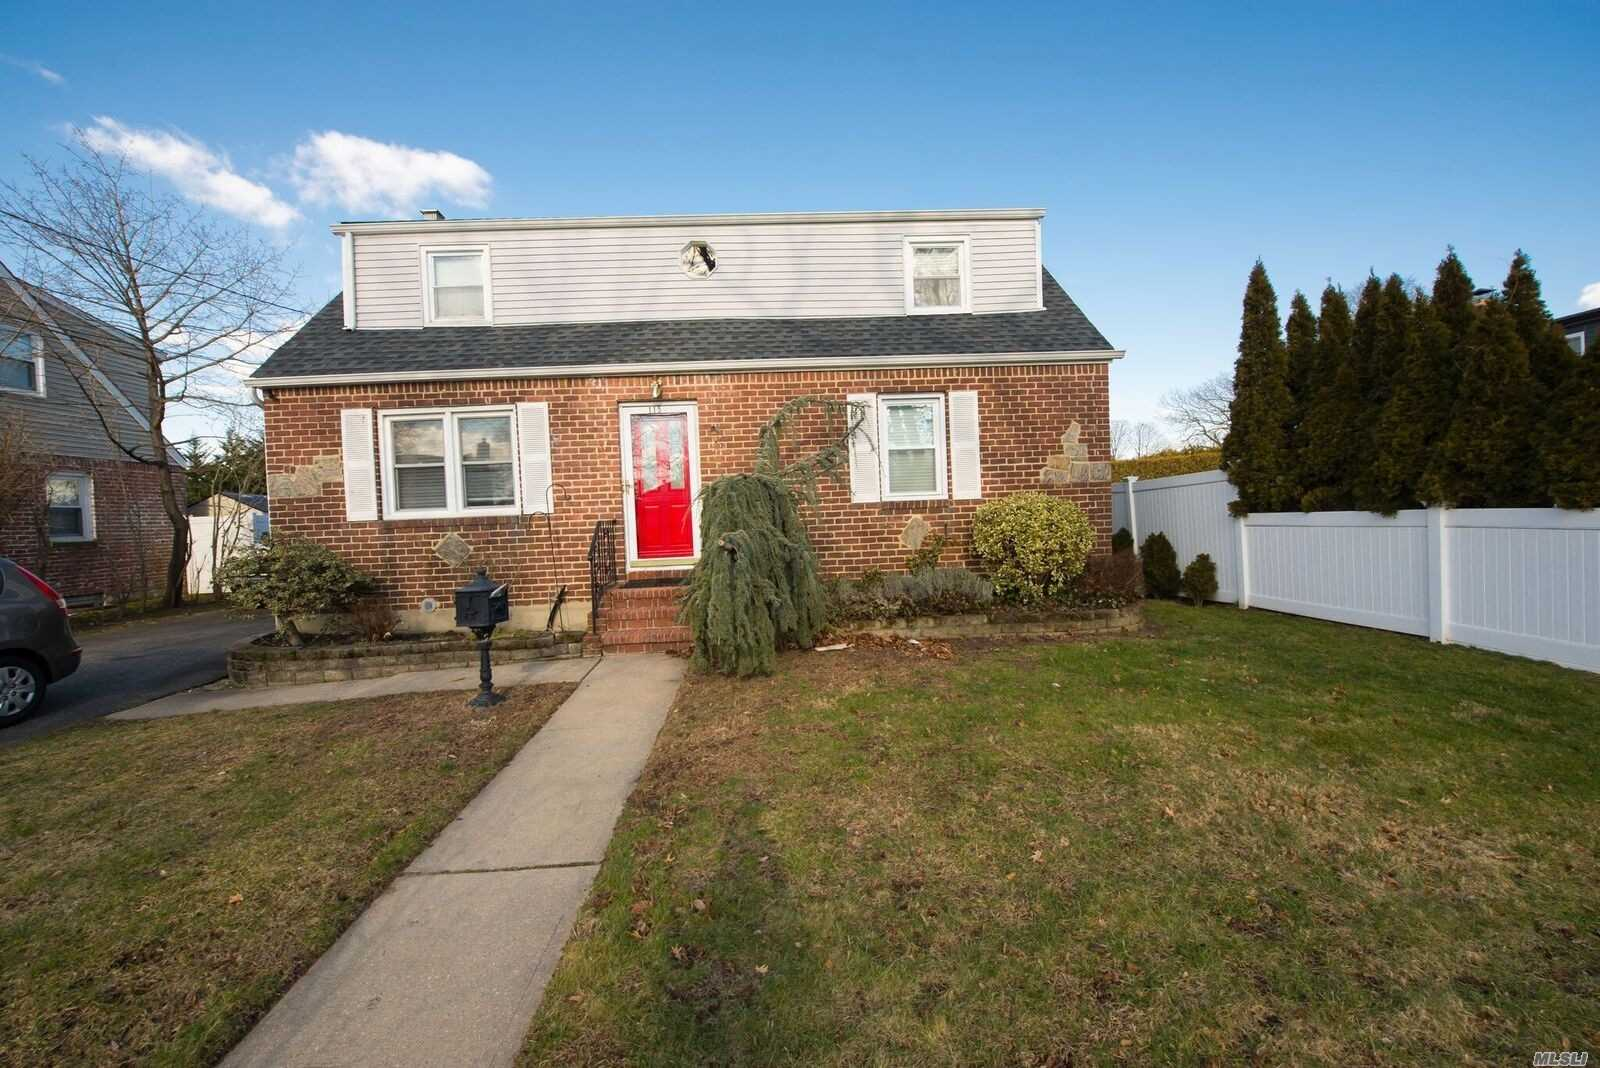 Dormered Home Less Than Half Mile To Lirr! Gas Heating And Cooking, New Kitchen And Bath W/Radiant, Security Cameras, Roof Approx 7 Yrs 1 Layer, Generator, Instant Hot Water, Garb Disp, 200 Amps, New Front And Back Doors, New Sewer Line, Mostly New Storm Windows